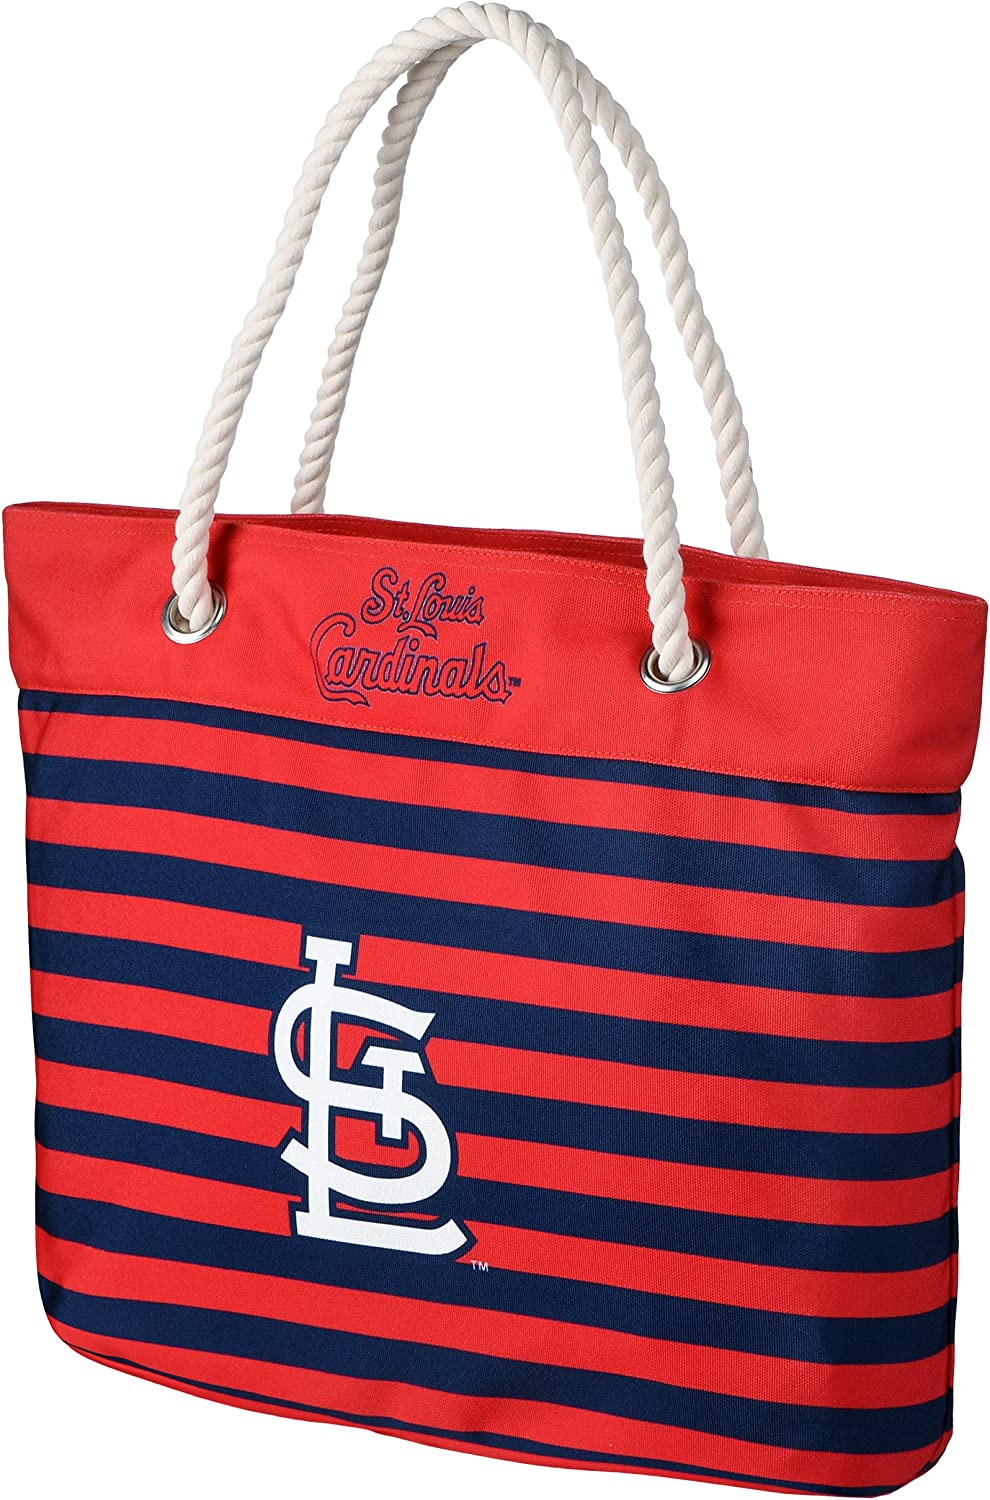 FOCO MLB Unisex-Adult Nautical Stripe Tote Bag